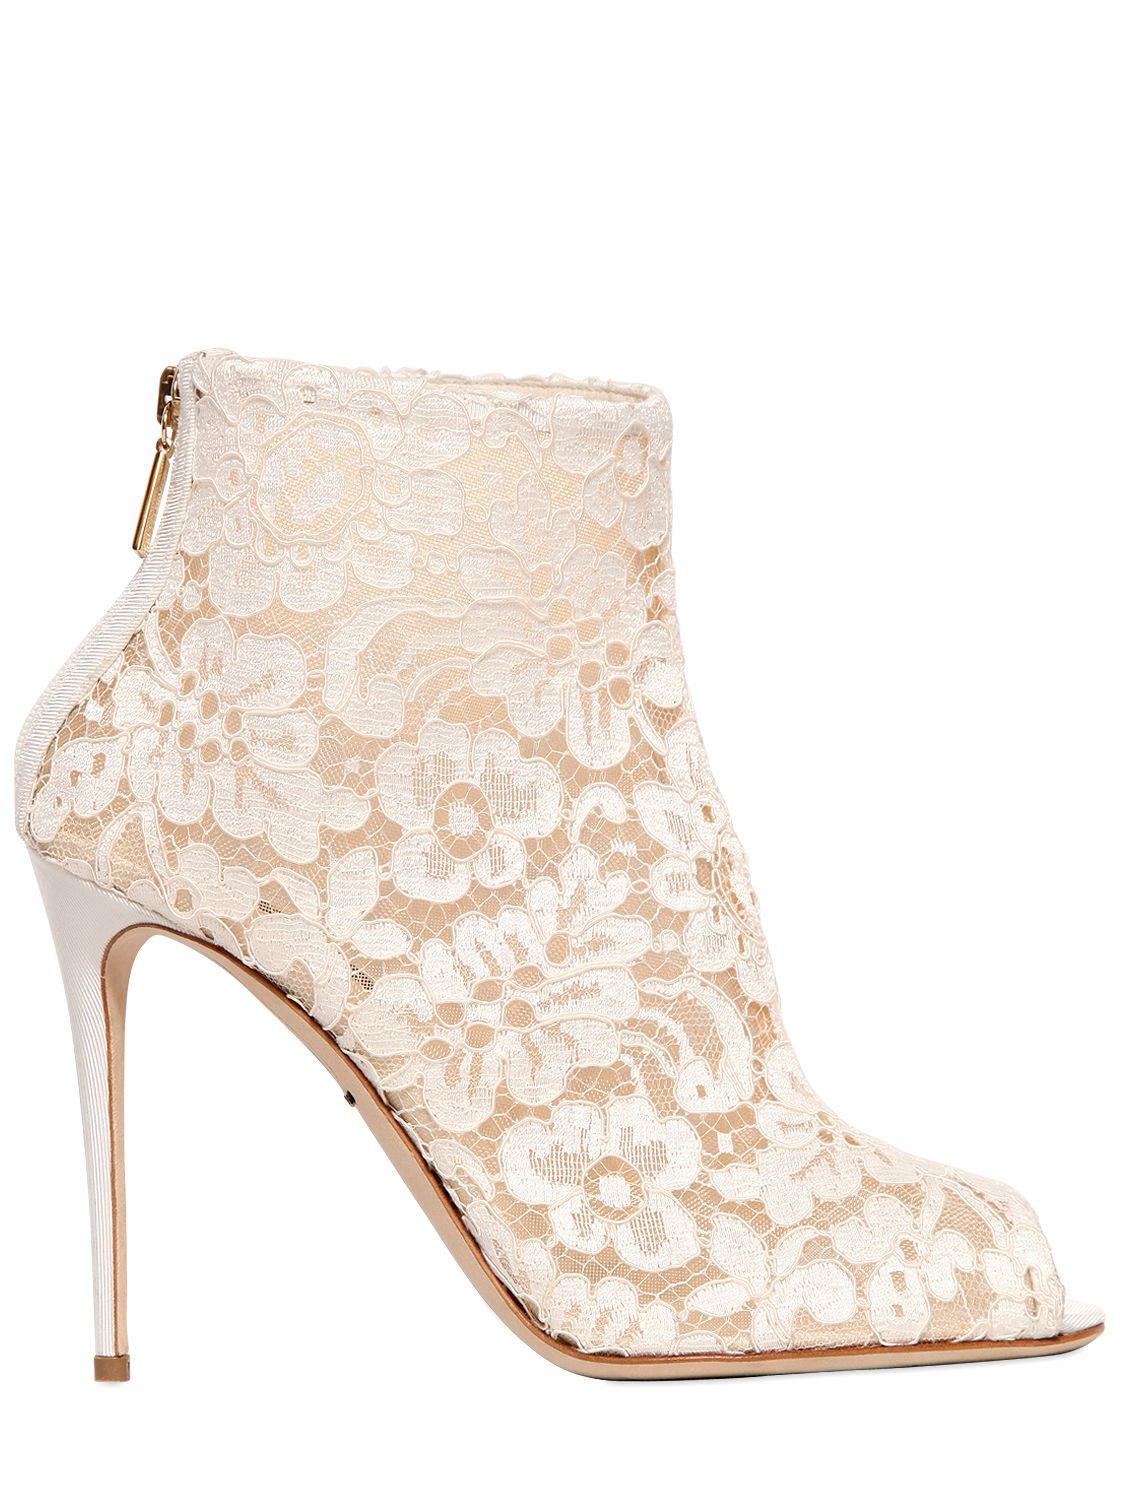 Dolce & Gabbana 105mm Beth Mesh Lace Peep-toe Boots in White